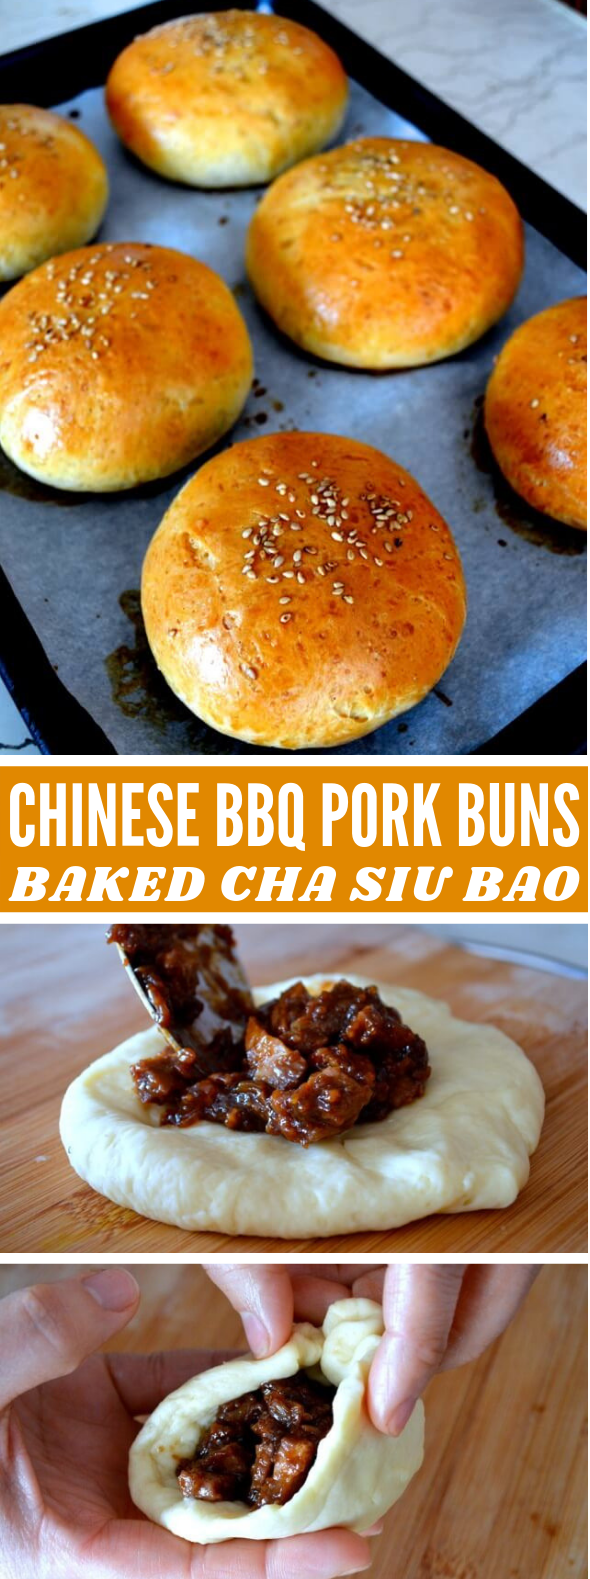 CHINESE BBQ PORK BUNS (BAKED CHA SIU BAO RECIPE) #dinner #food